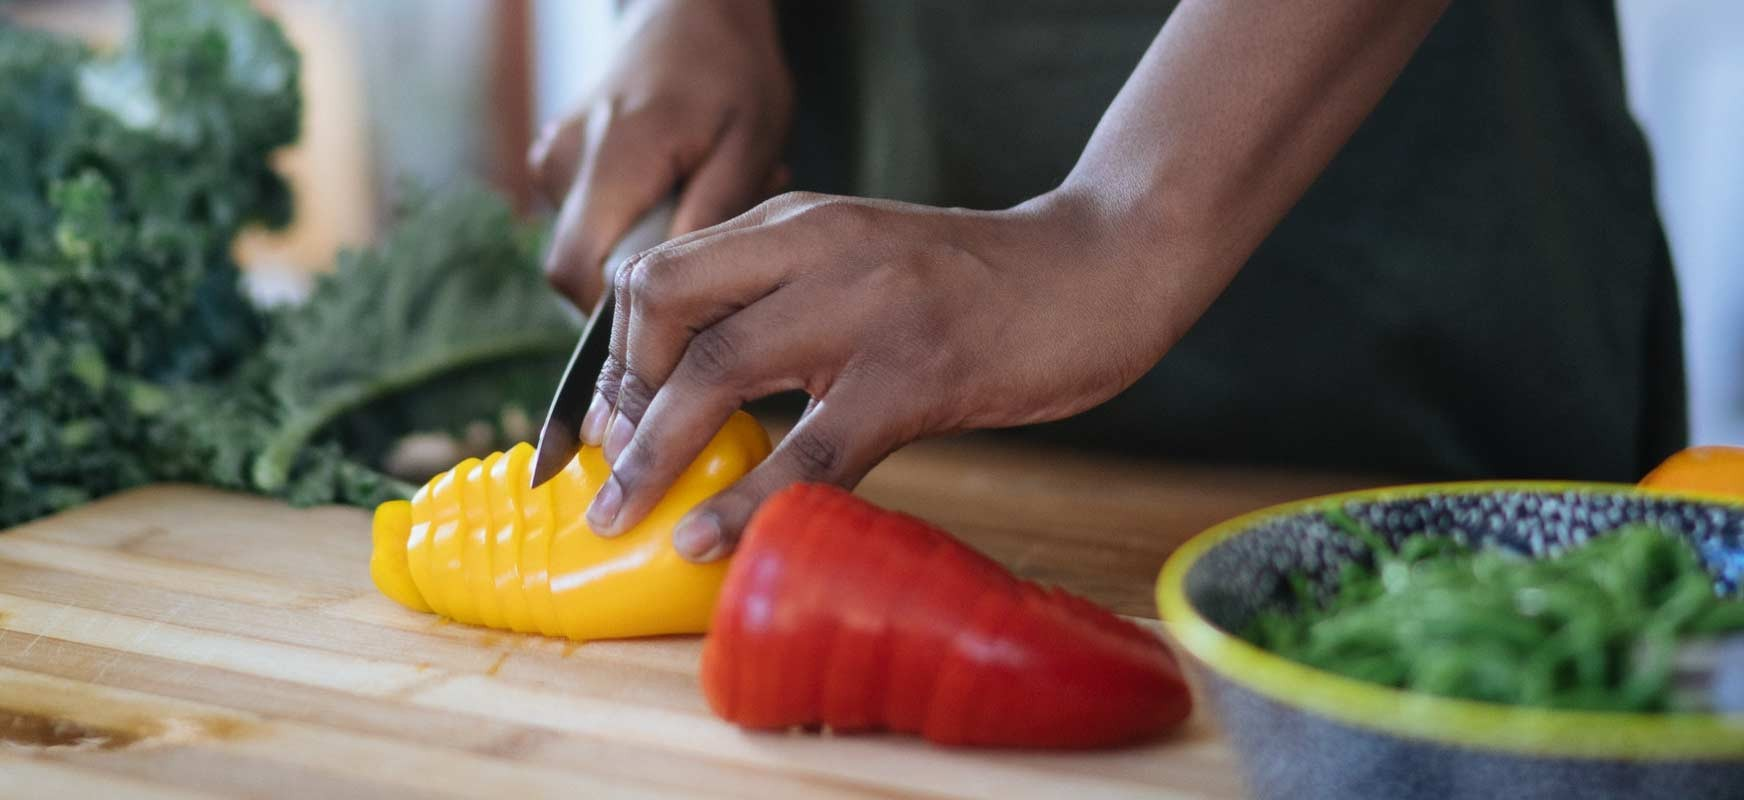 A person cuts up bell peppers for a salad to avoid food waste